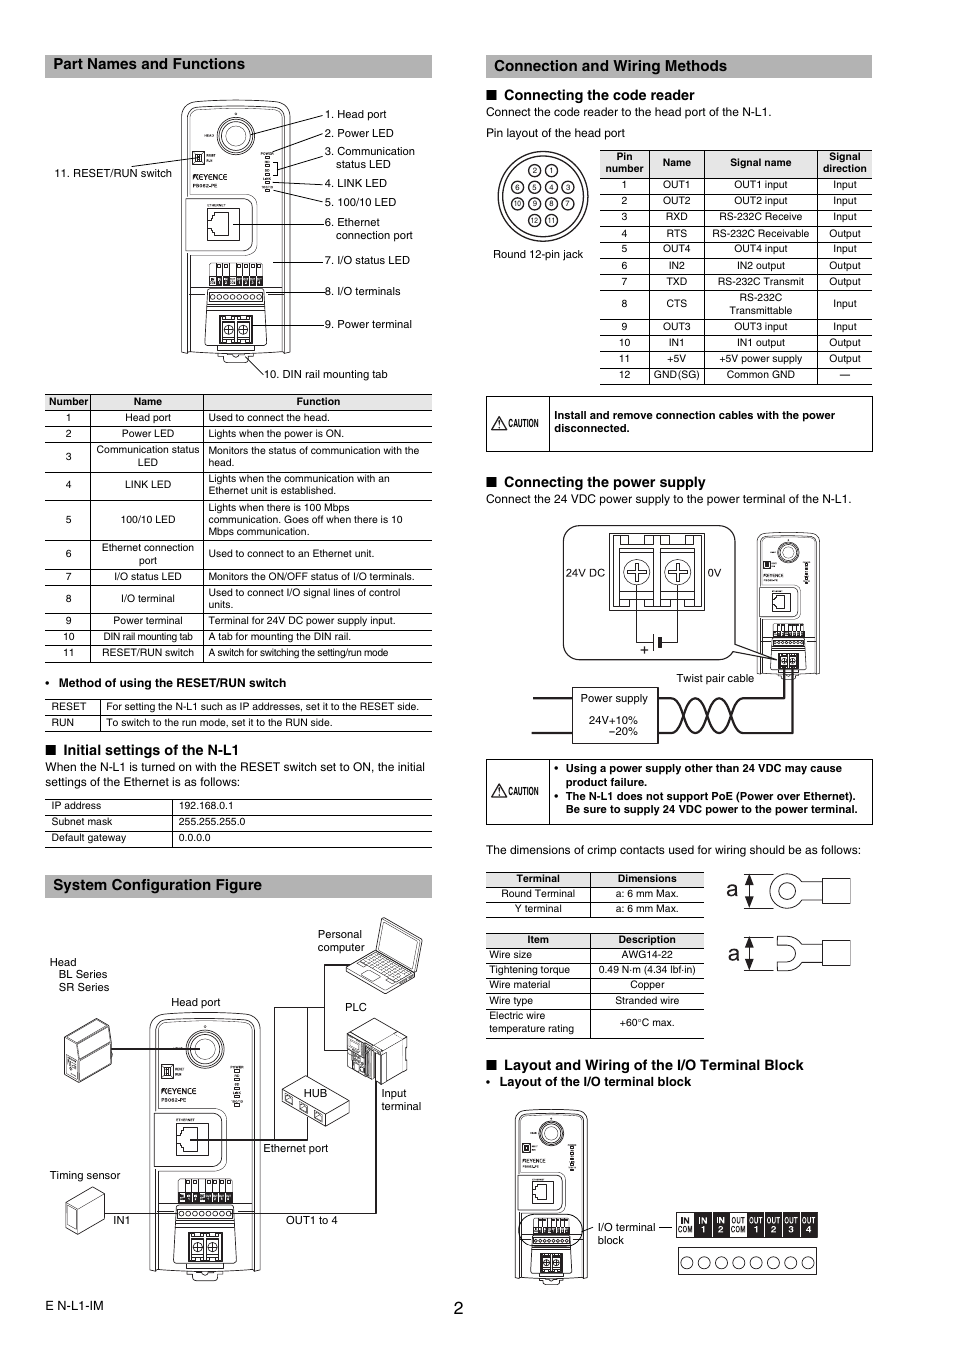 Part names and functions, Initial settings of the n-l1